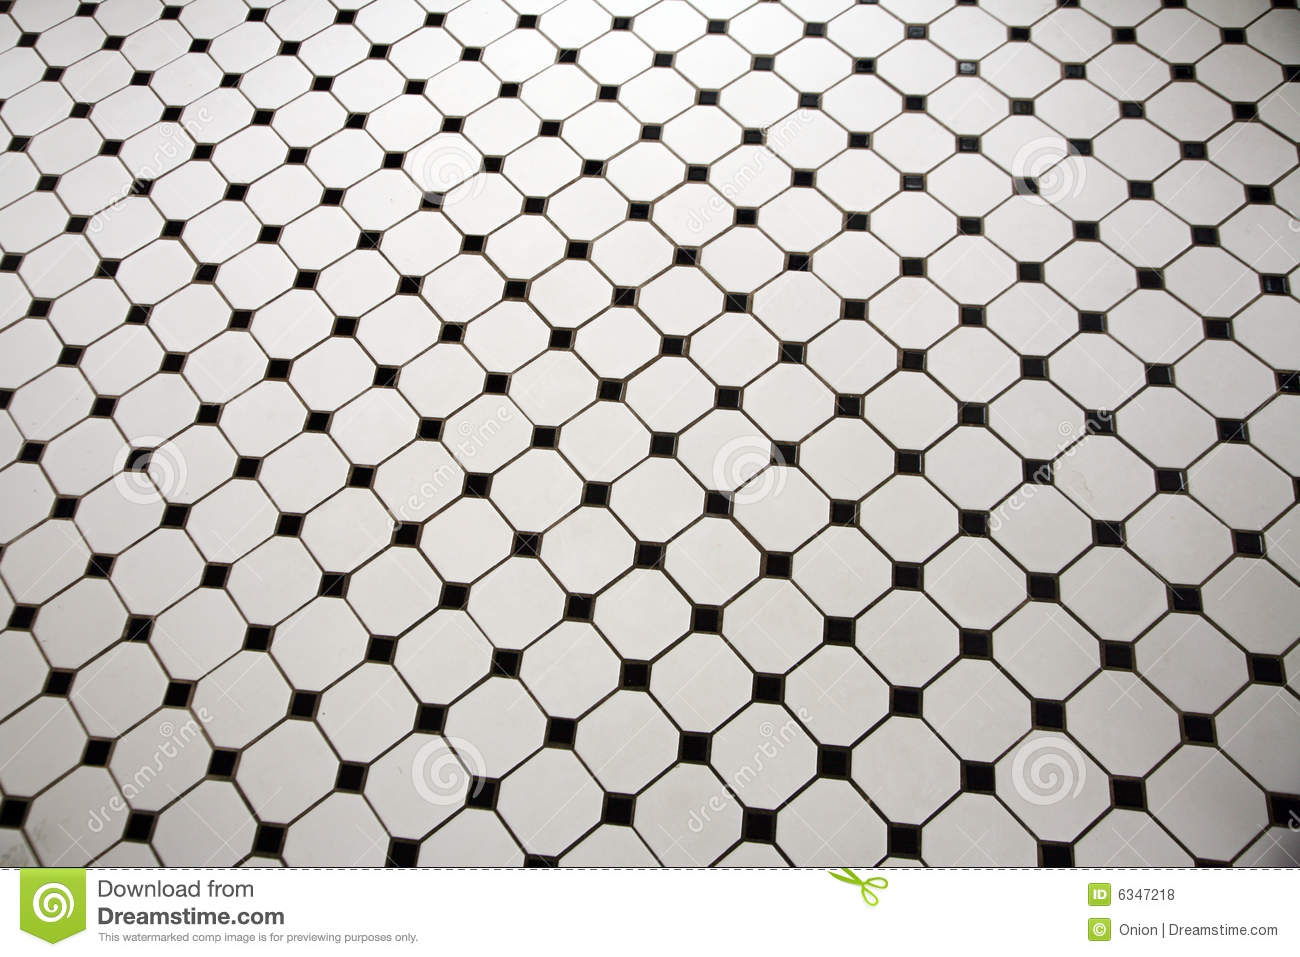 Black and white tiled floor stock photo image 6347218 for Black and white tile floors